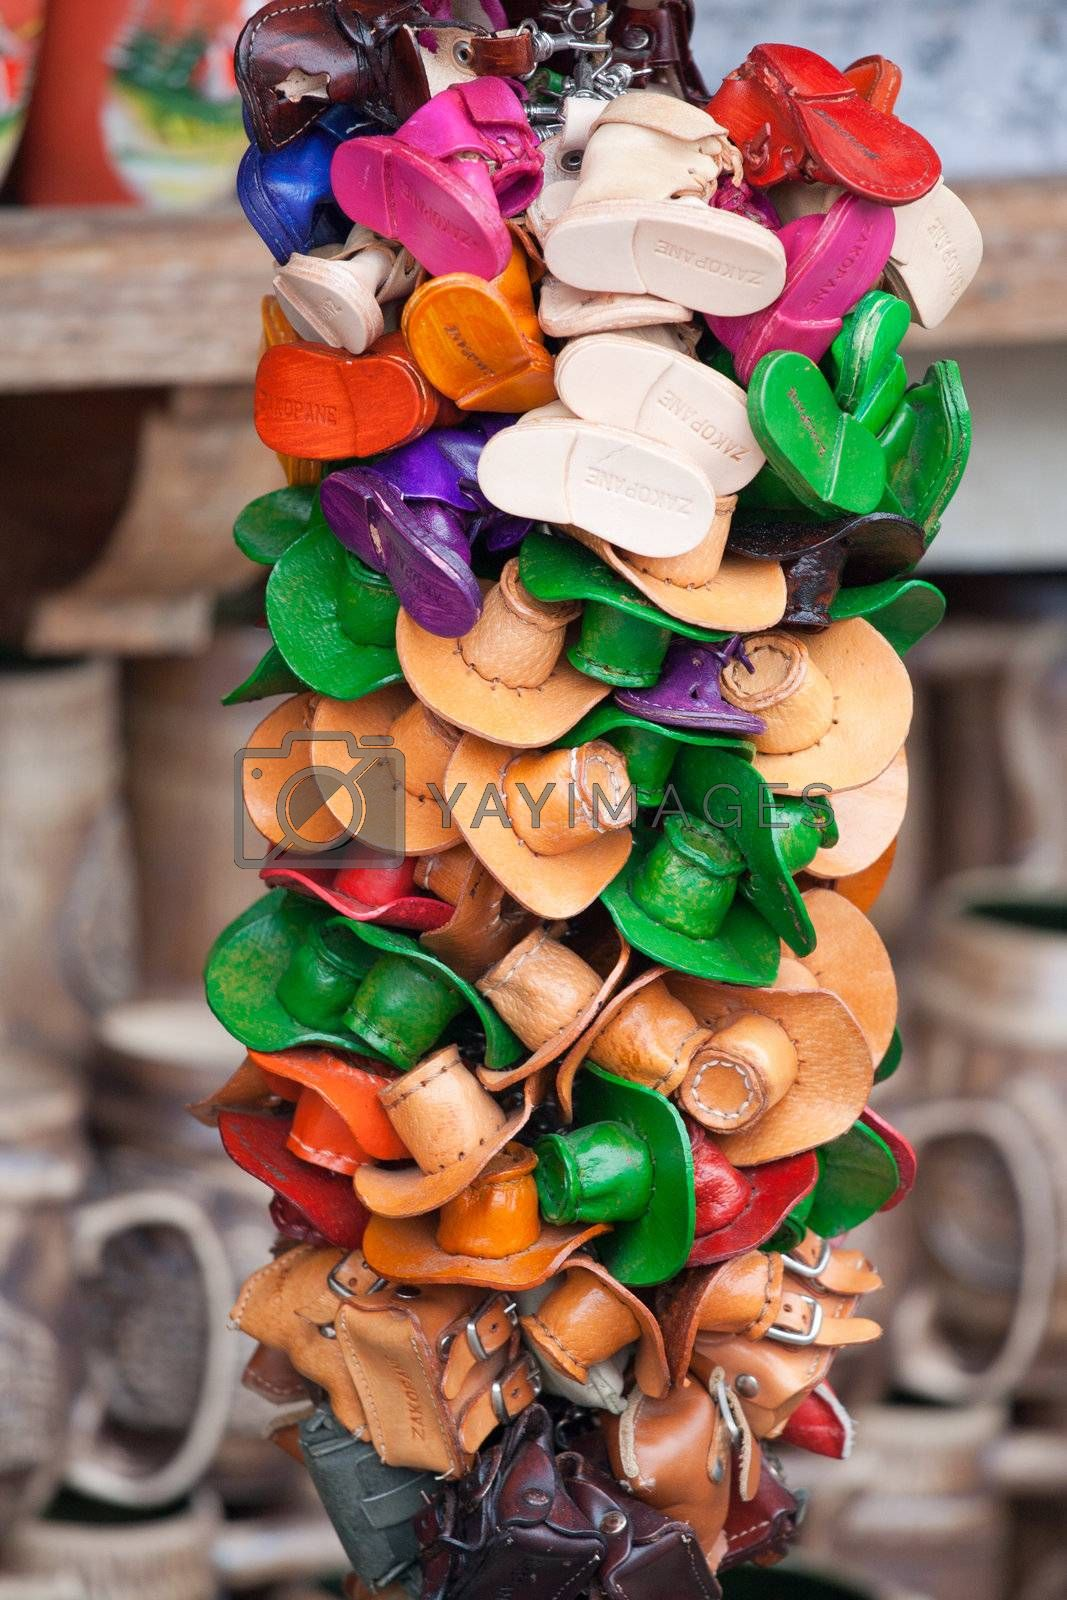 Bundle of small tourists vintage souvenirs multicolored decorative handmade leather hats and boots close-up on craft market in Zakopane Poland